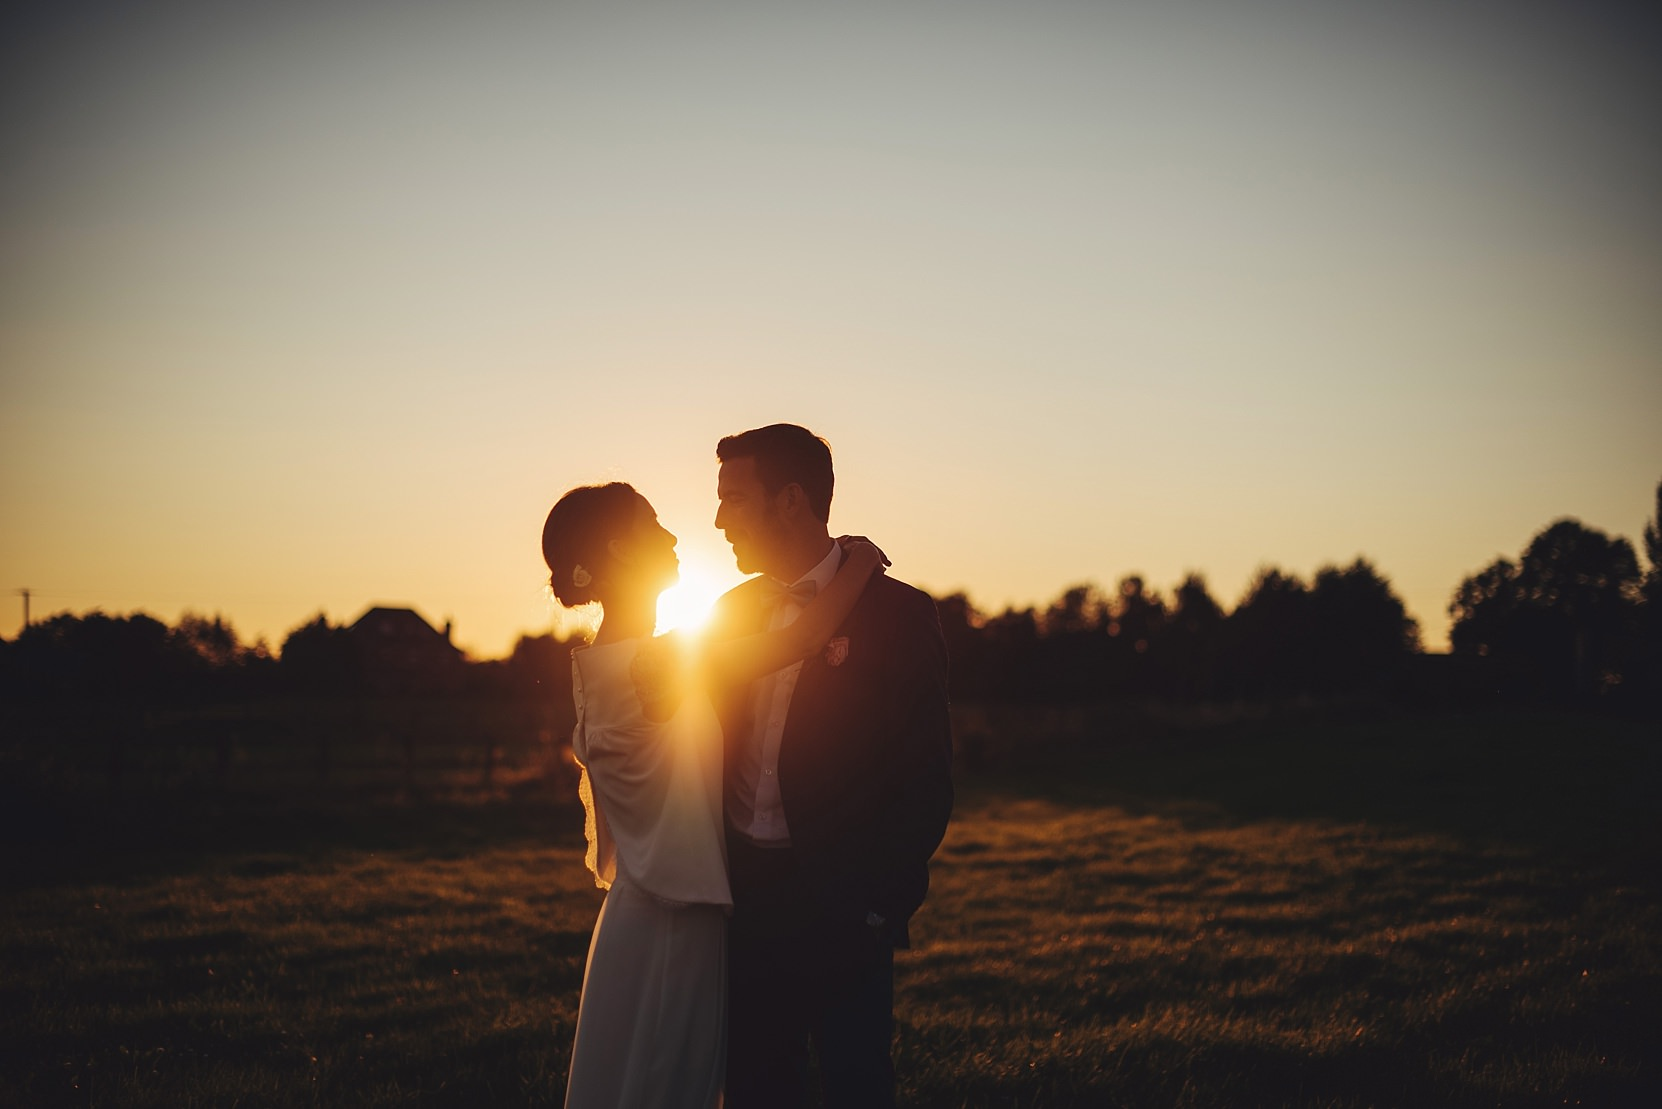 Bride and Groom at sunset in an open field